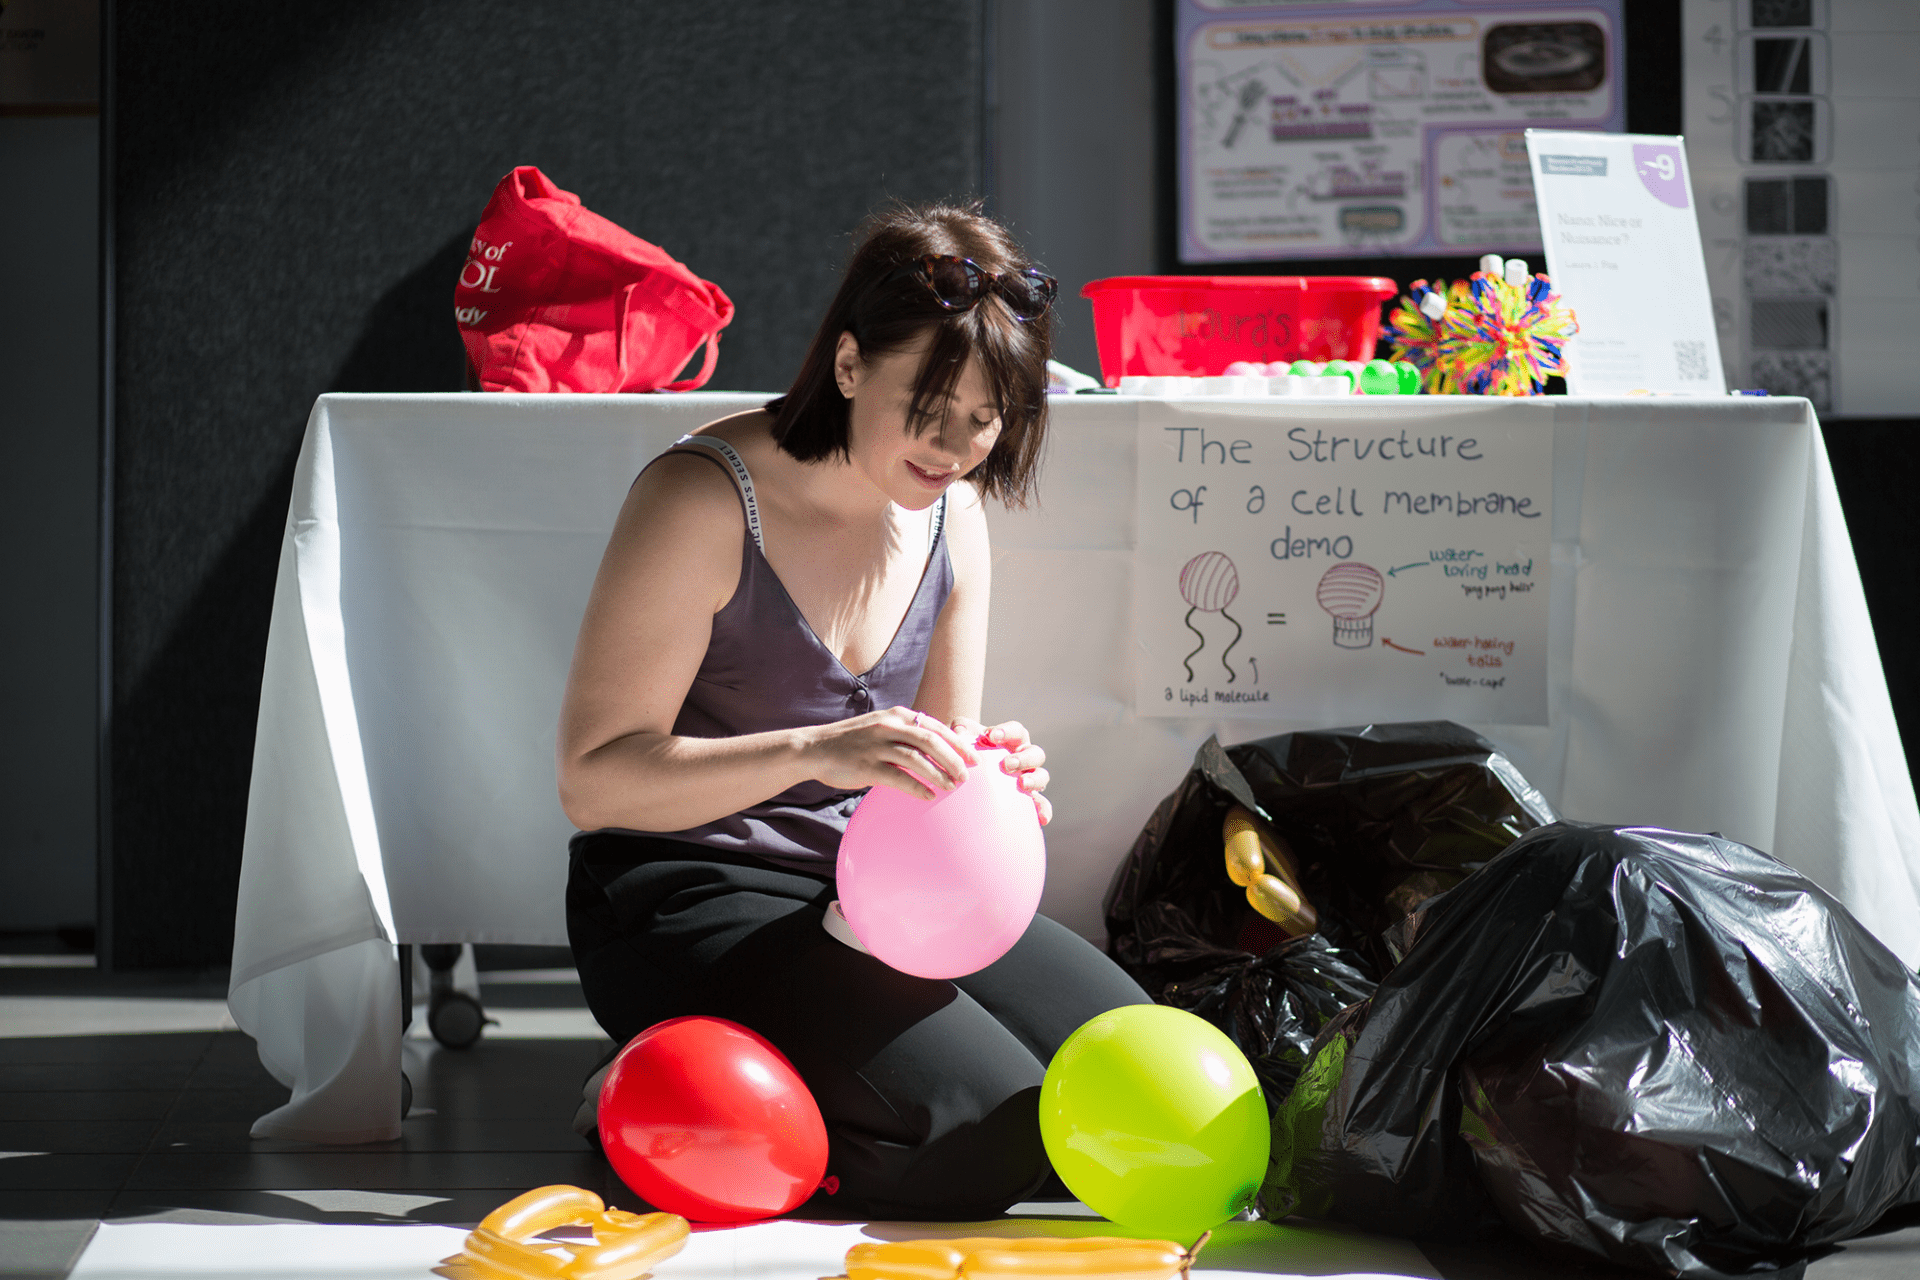 Laura Fox tying up an inflated balloon